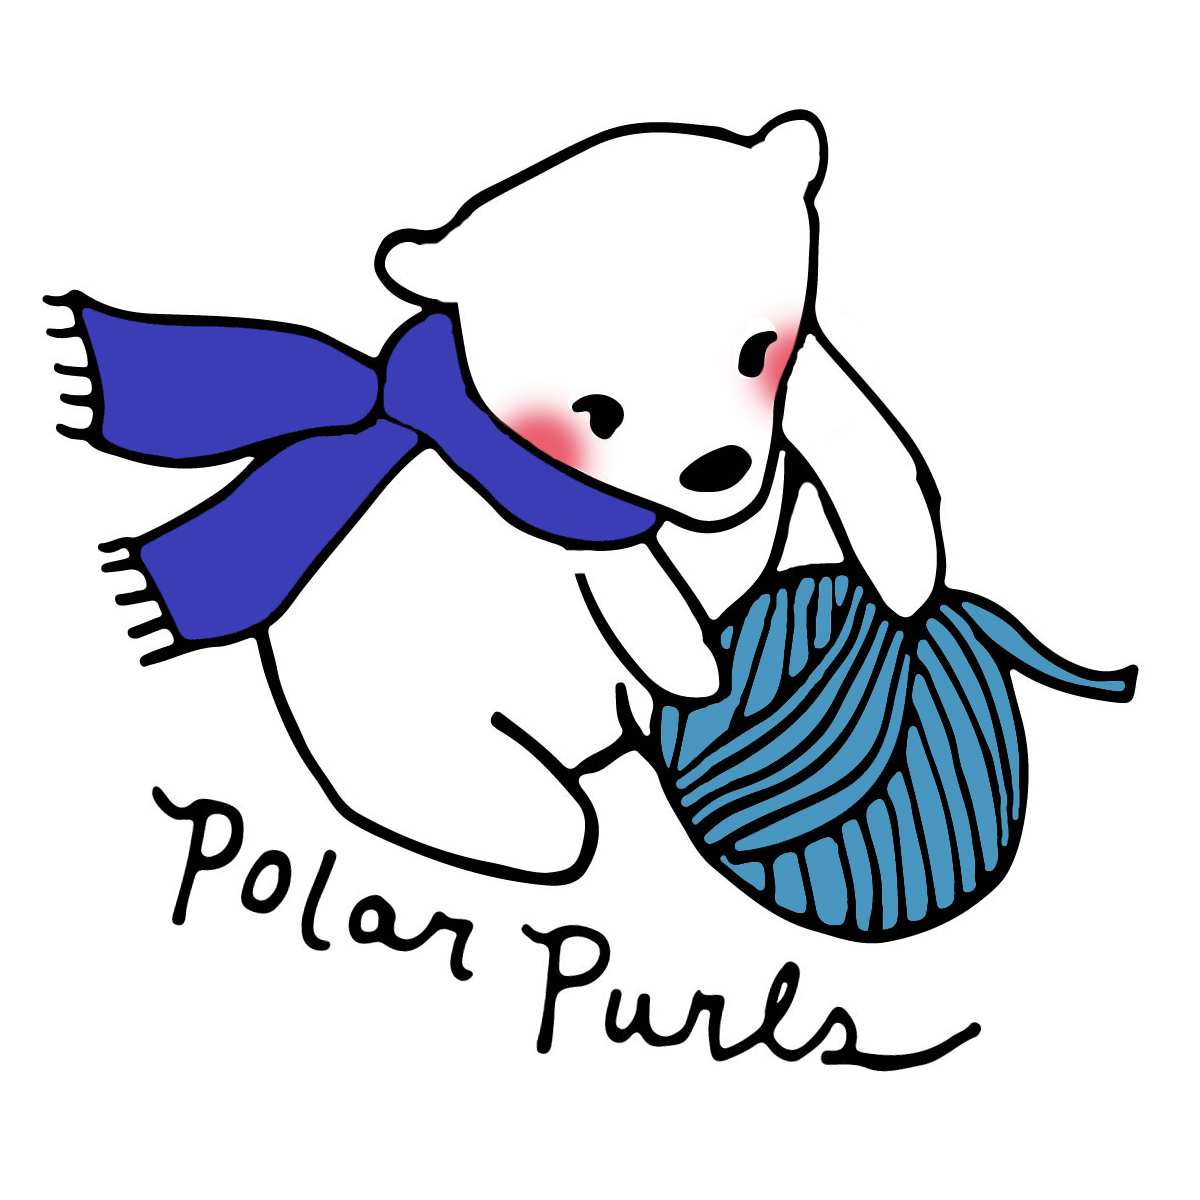 Polar Purls logo